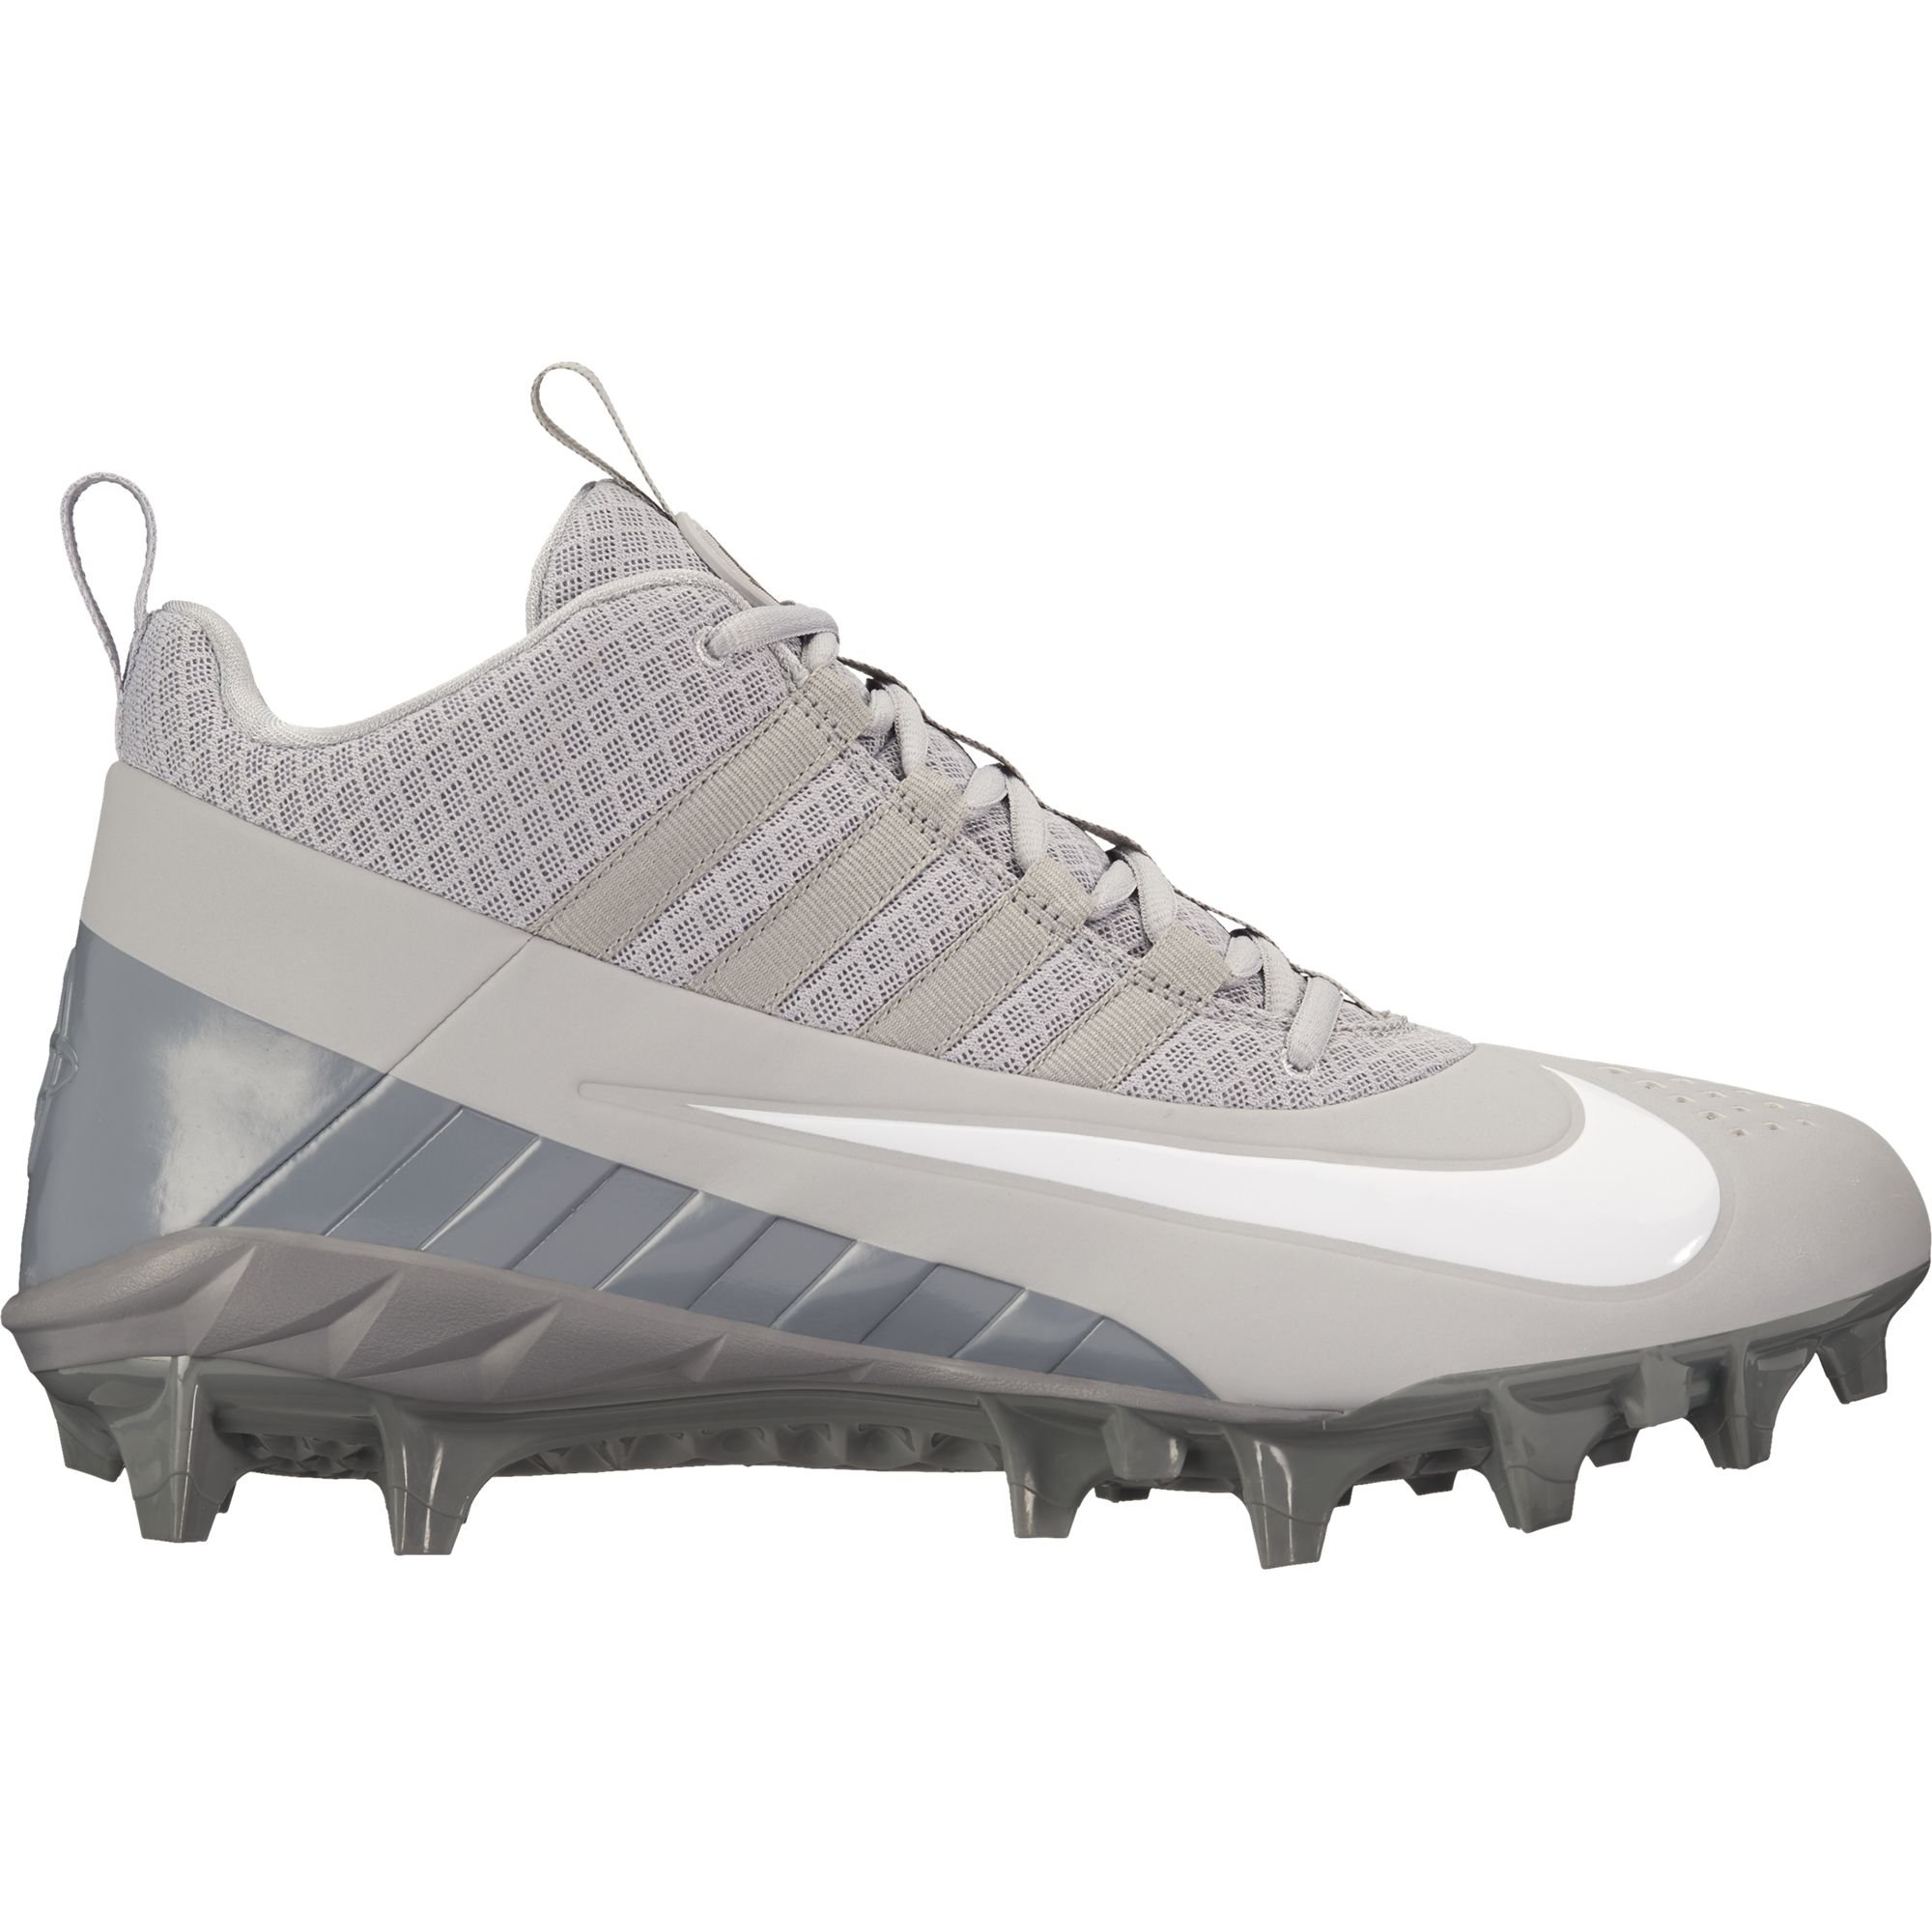 NIKE Men's Alpha Huarache 6 Pro Lax Lacrosse Cleat Wolf Grey/White/Cool Grey Size 10 M US